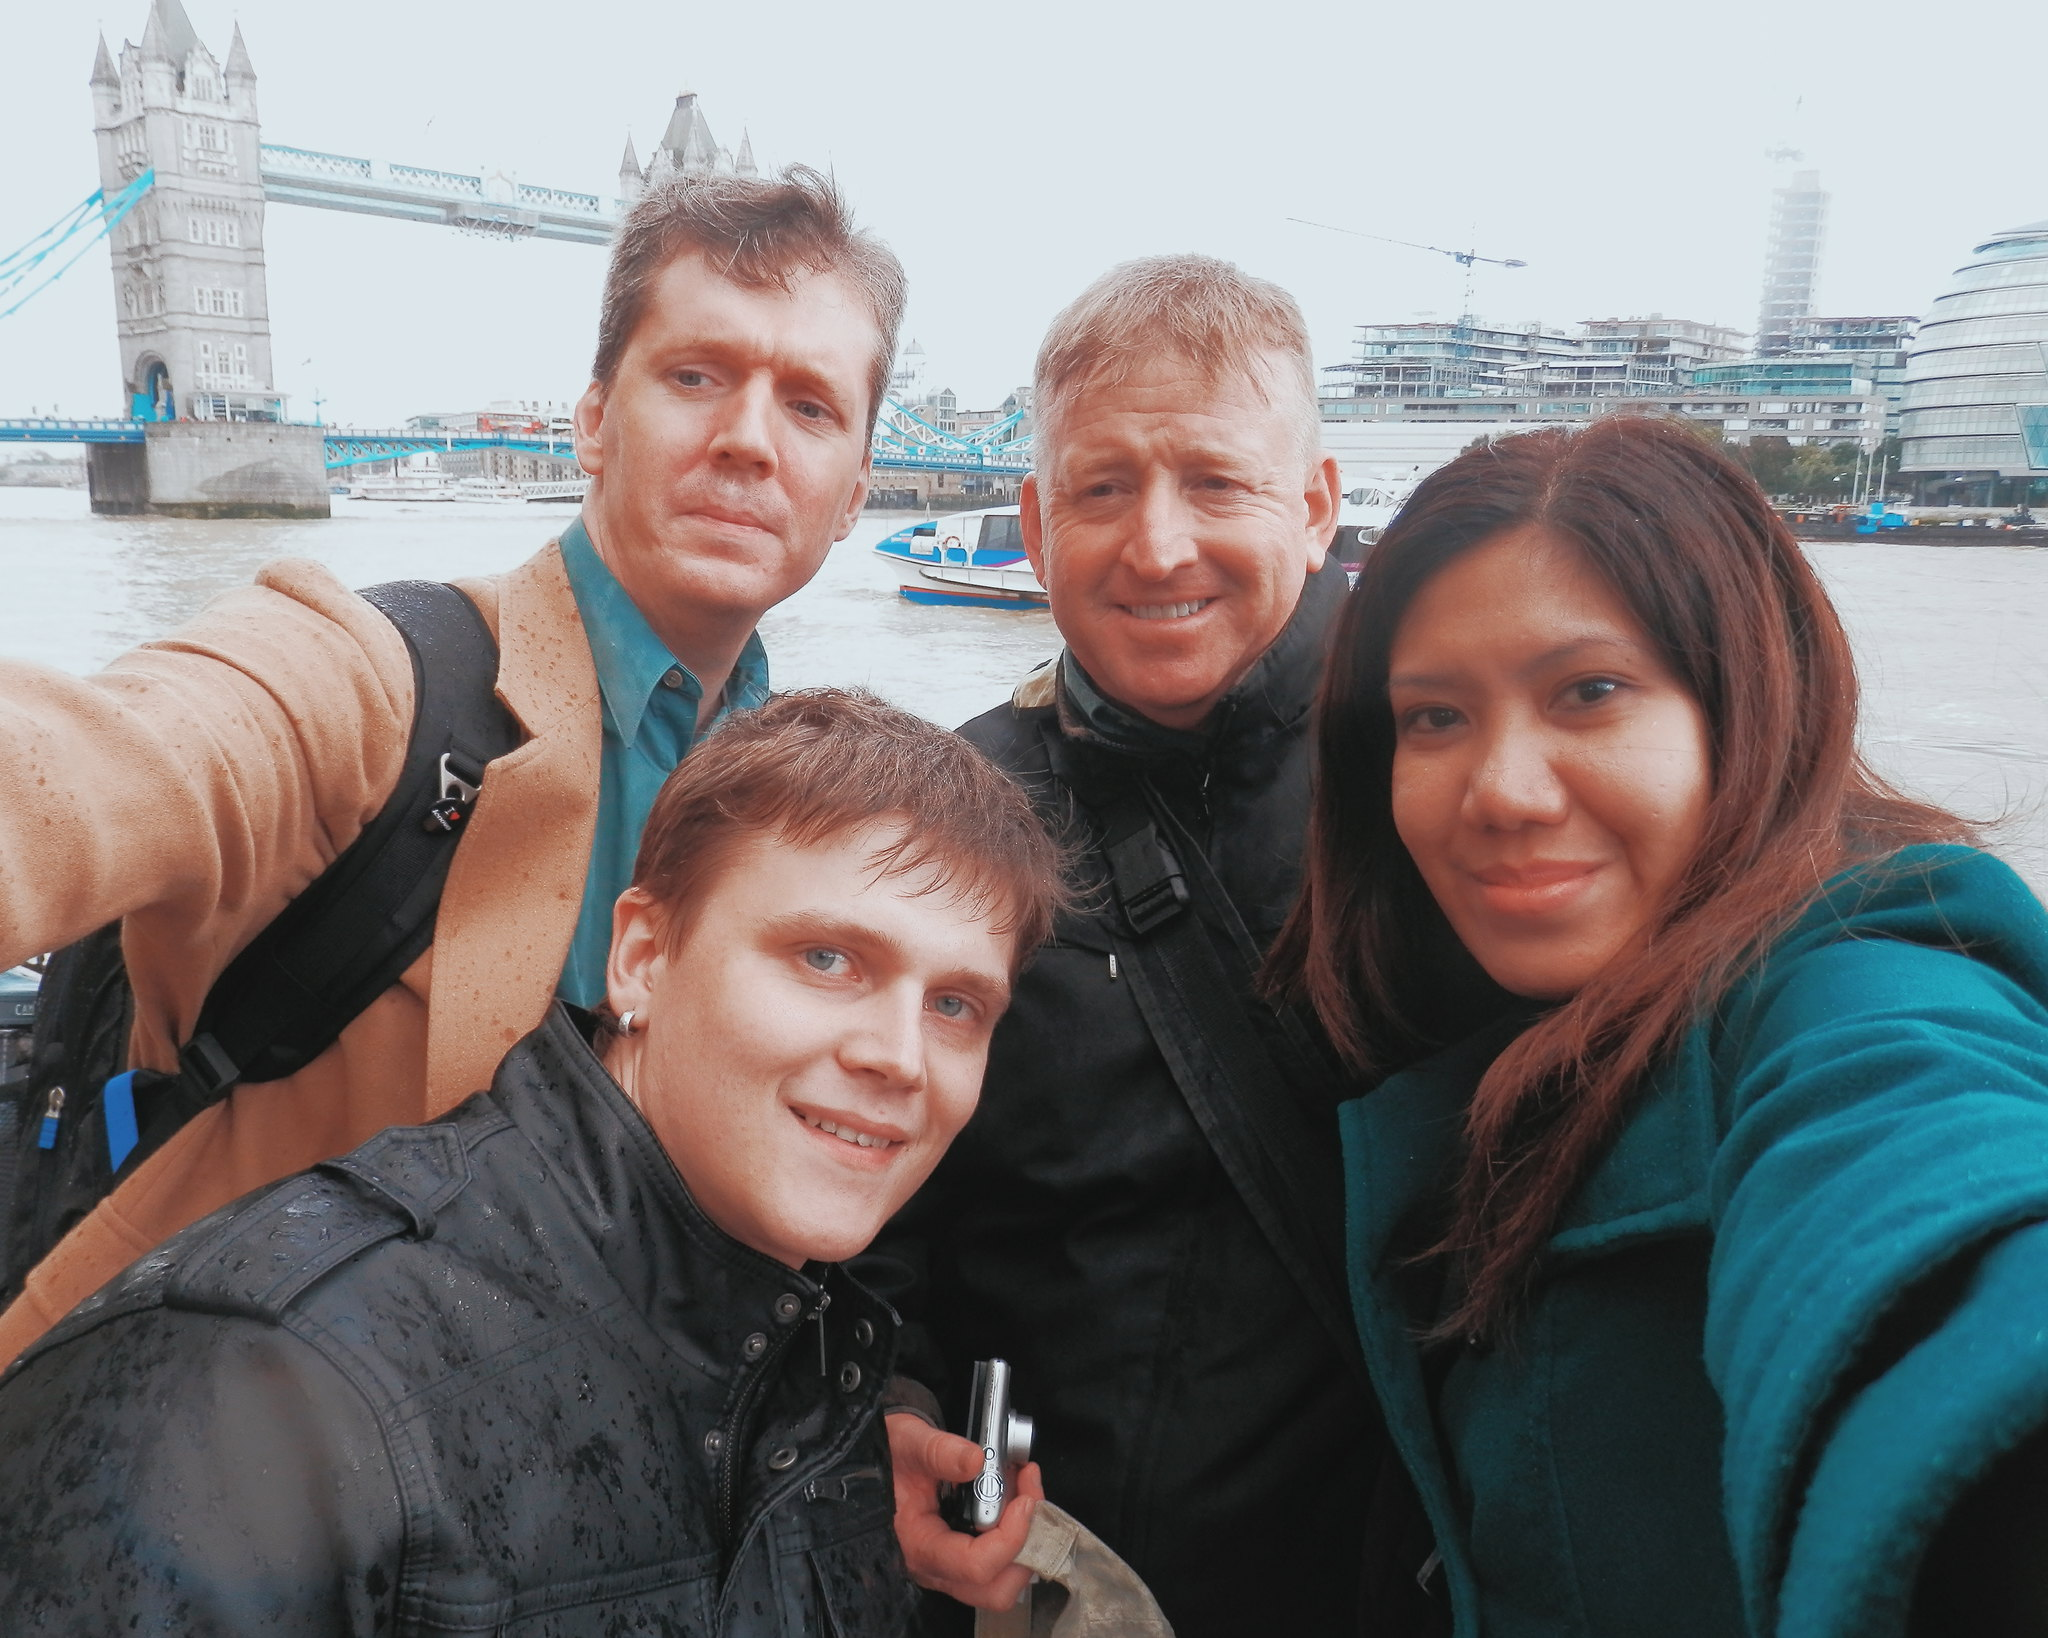 Bucket List London Tower Bridge  Blog